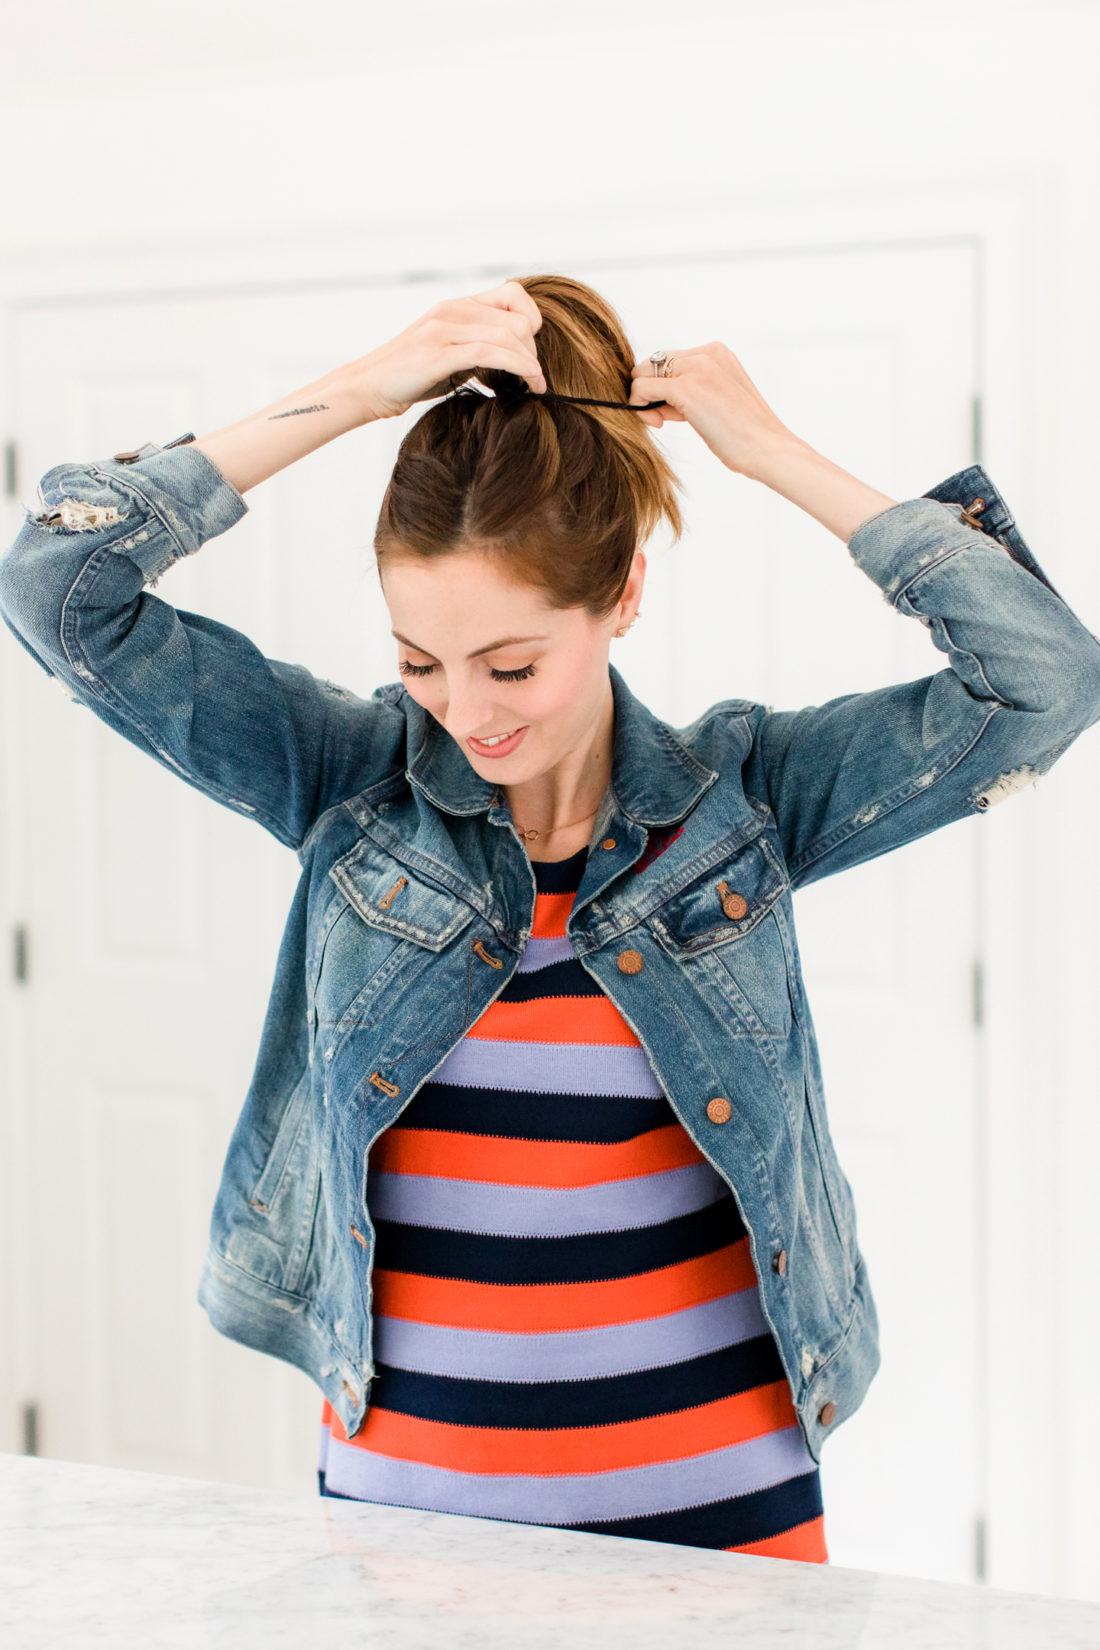 Eva Amurri Martino puts her hair up in to a high bun